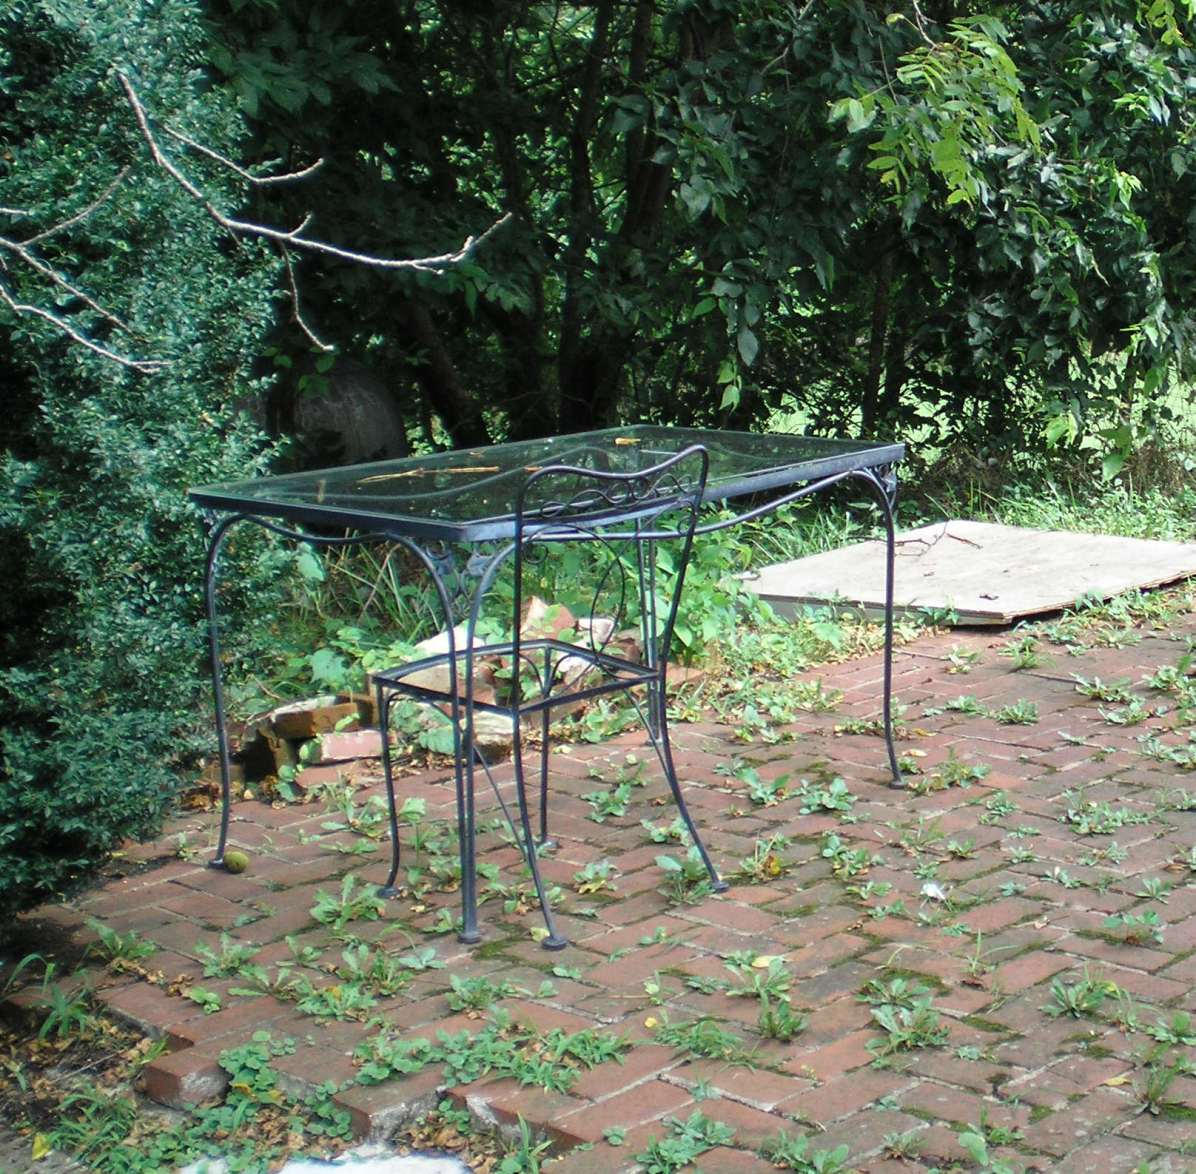 SHWC2006: Outdoor sitting area by steward